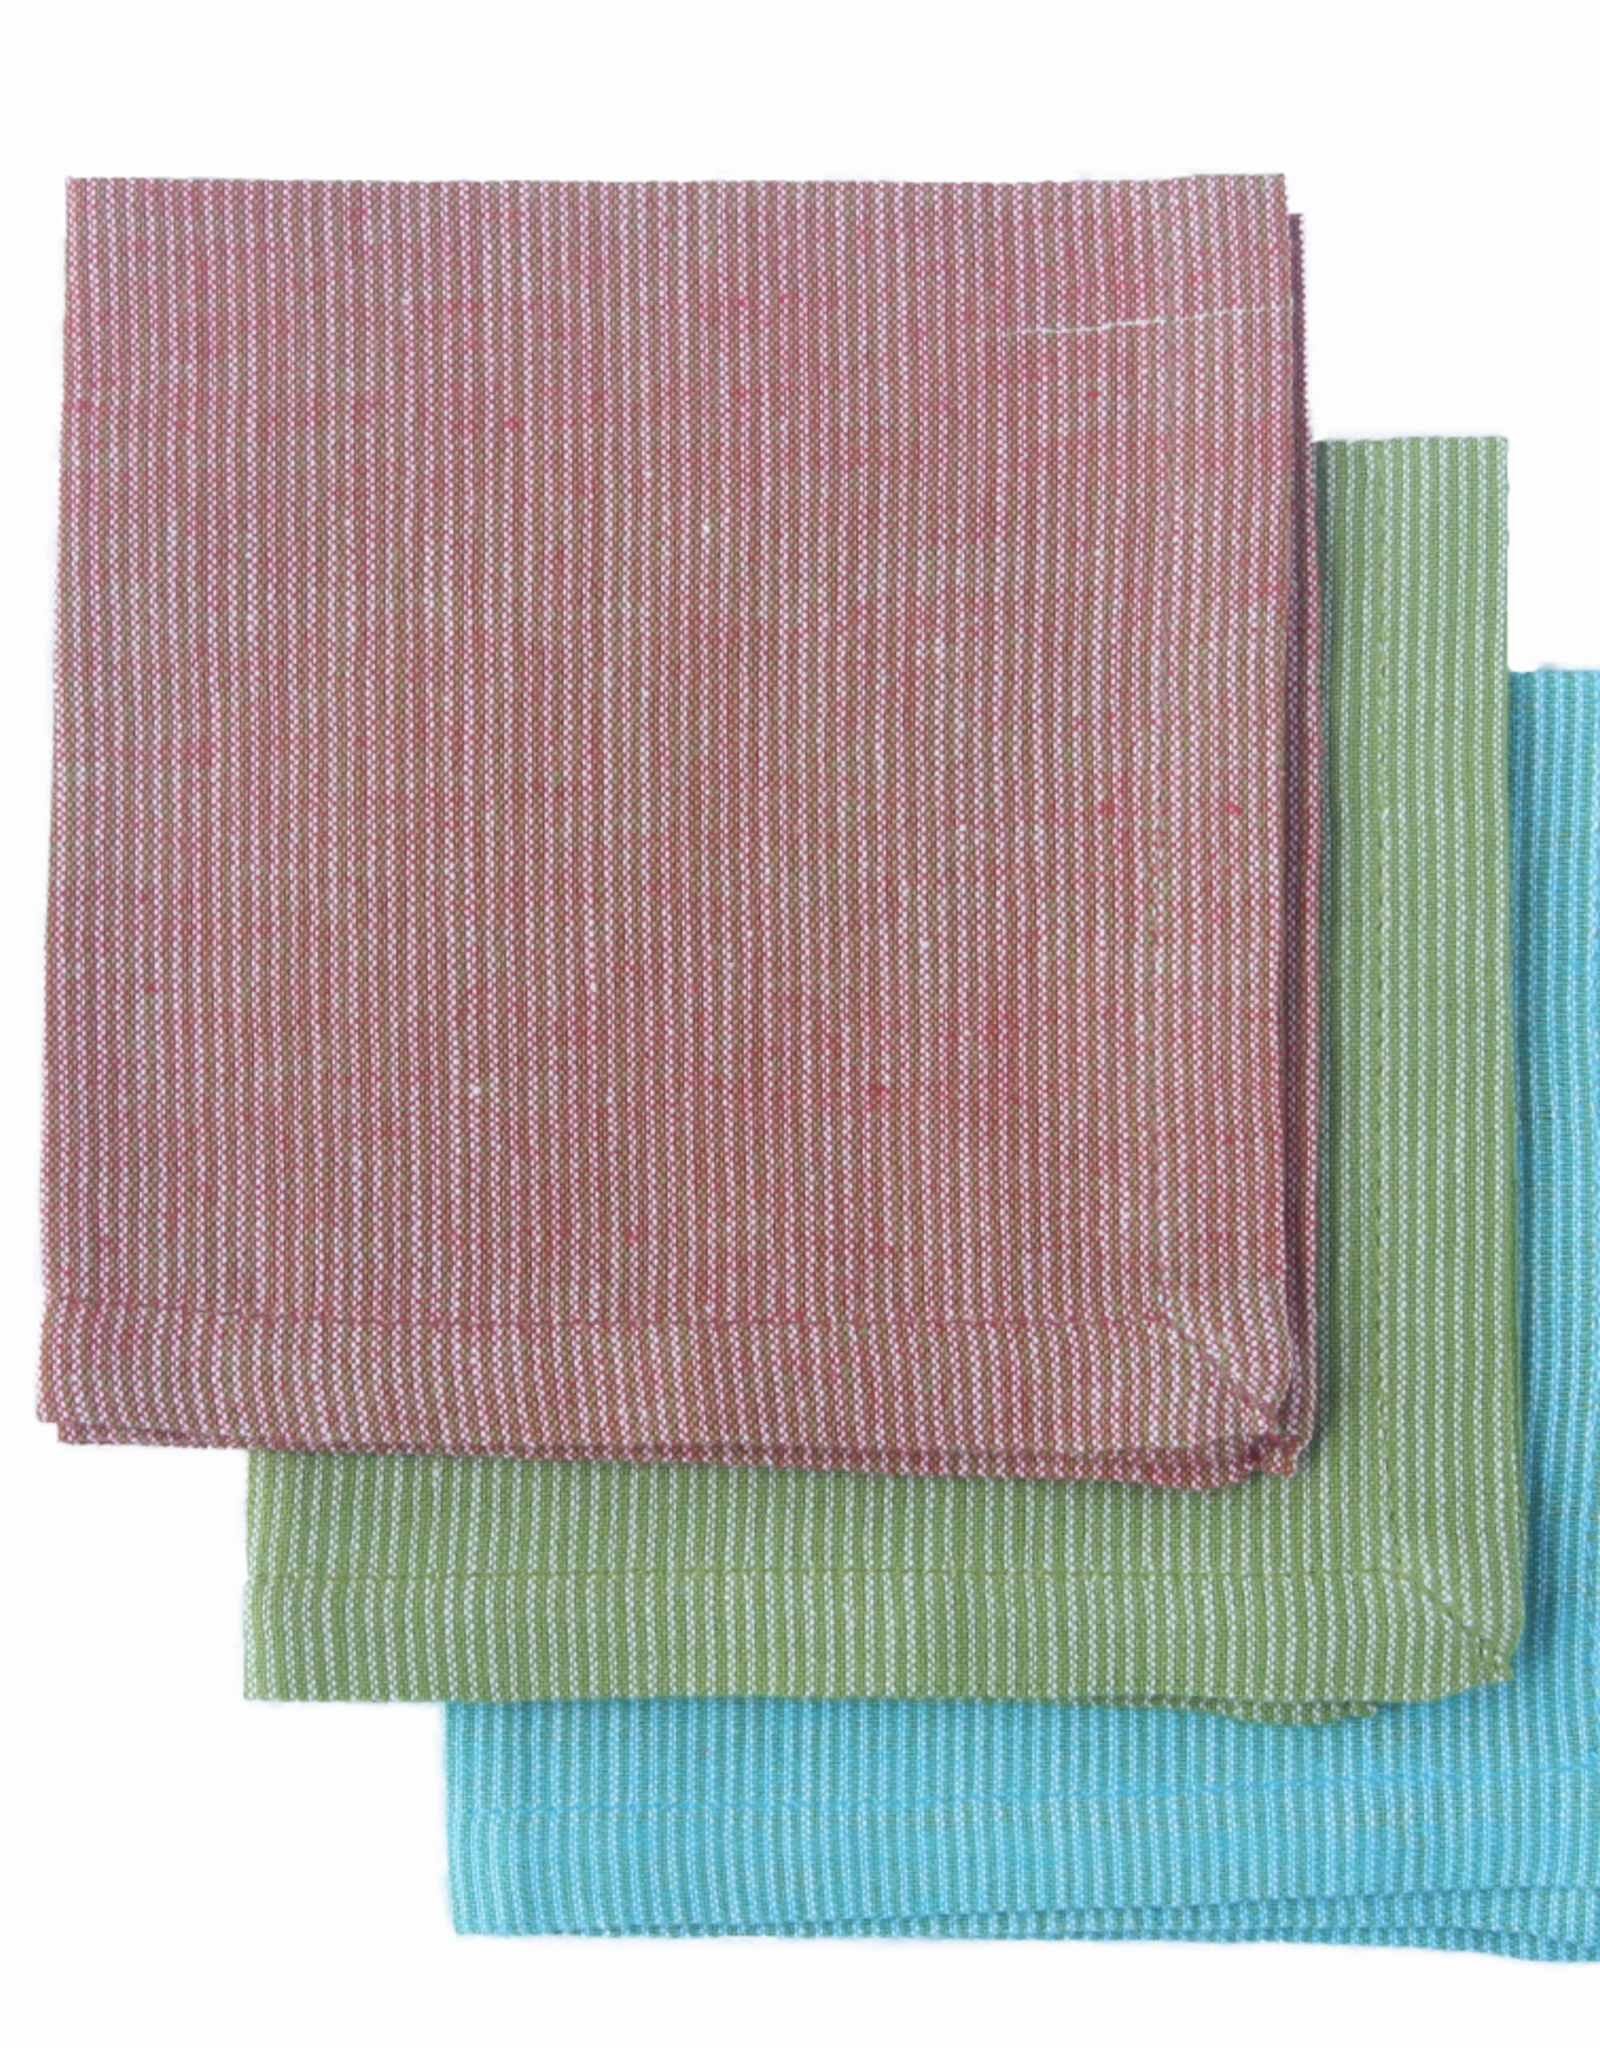 India, 9 x 9 Cotton Handkerchief Charlotte